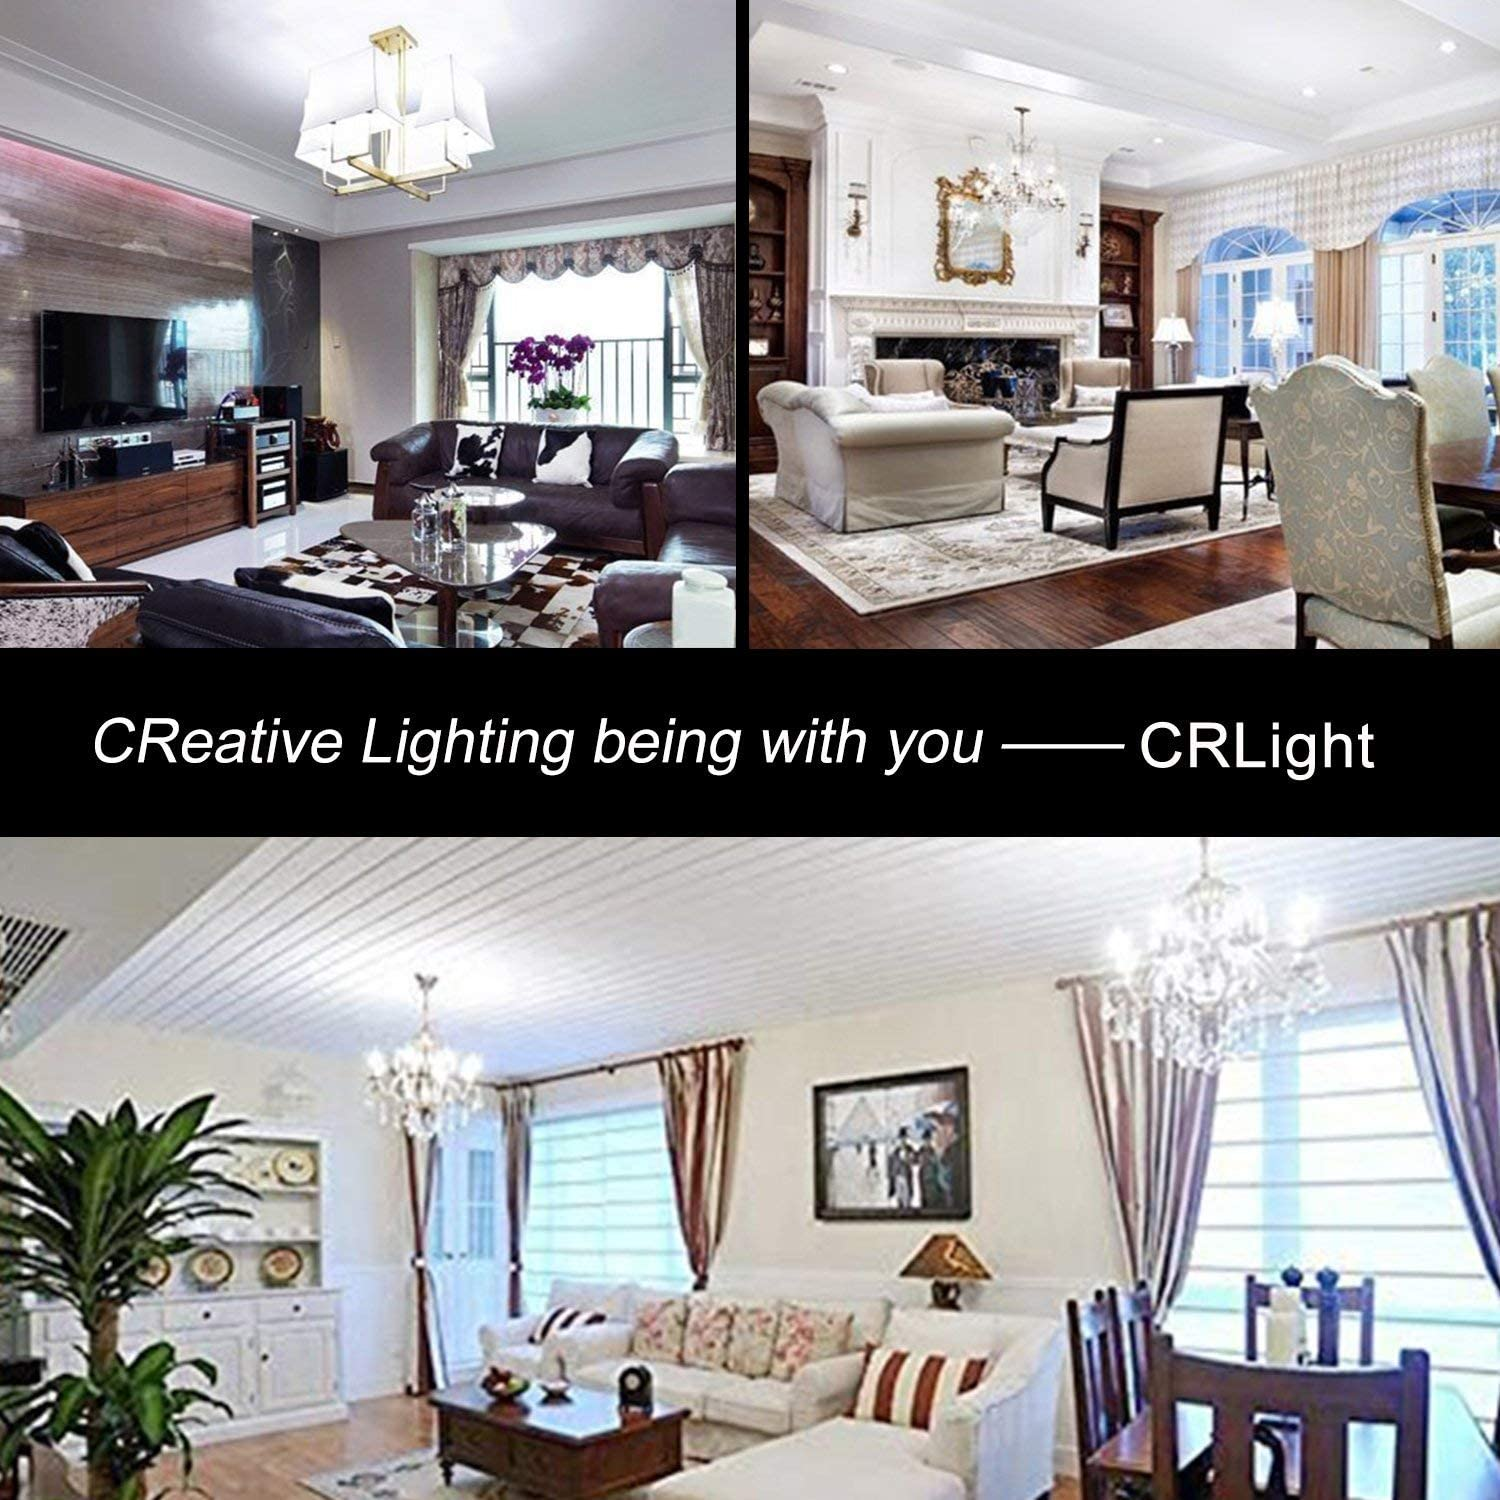 CRLight 2W LED Candelabra Bulb 6000K Daylight White E12 Base Dimmable LED Filament Chandelier Light Bulbs Pack of 8 30W Equivalent 300 Lumens Antique CA11 Clear Glass Candle Flame Tip